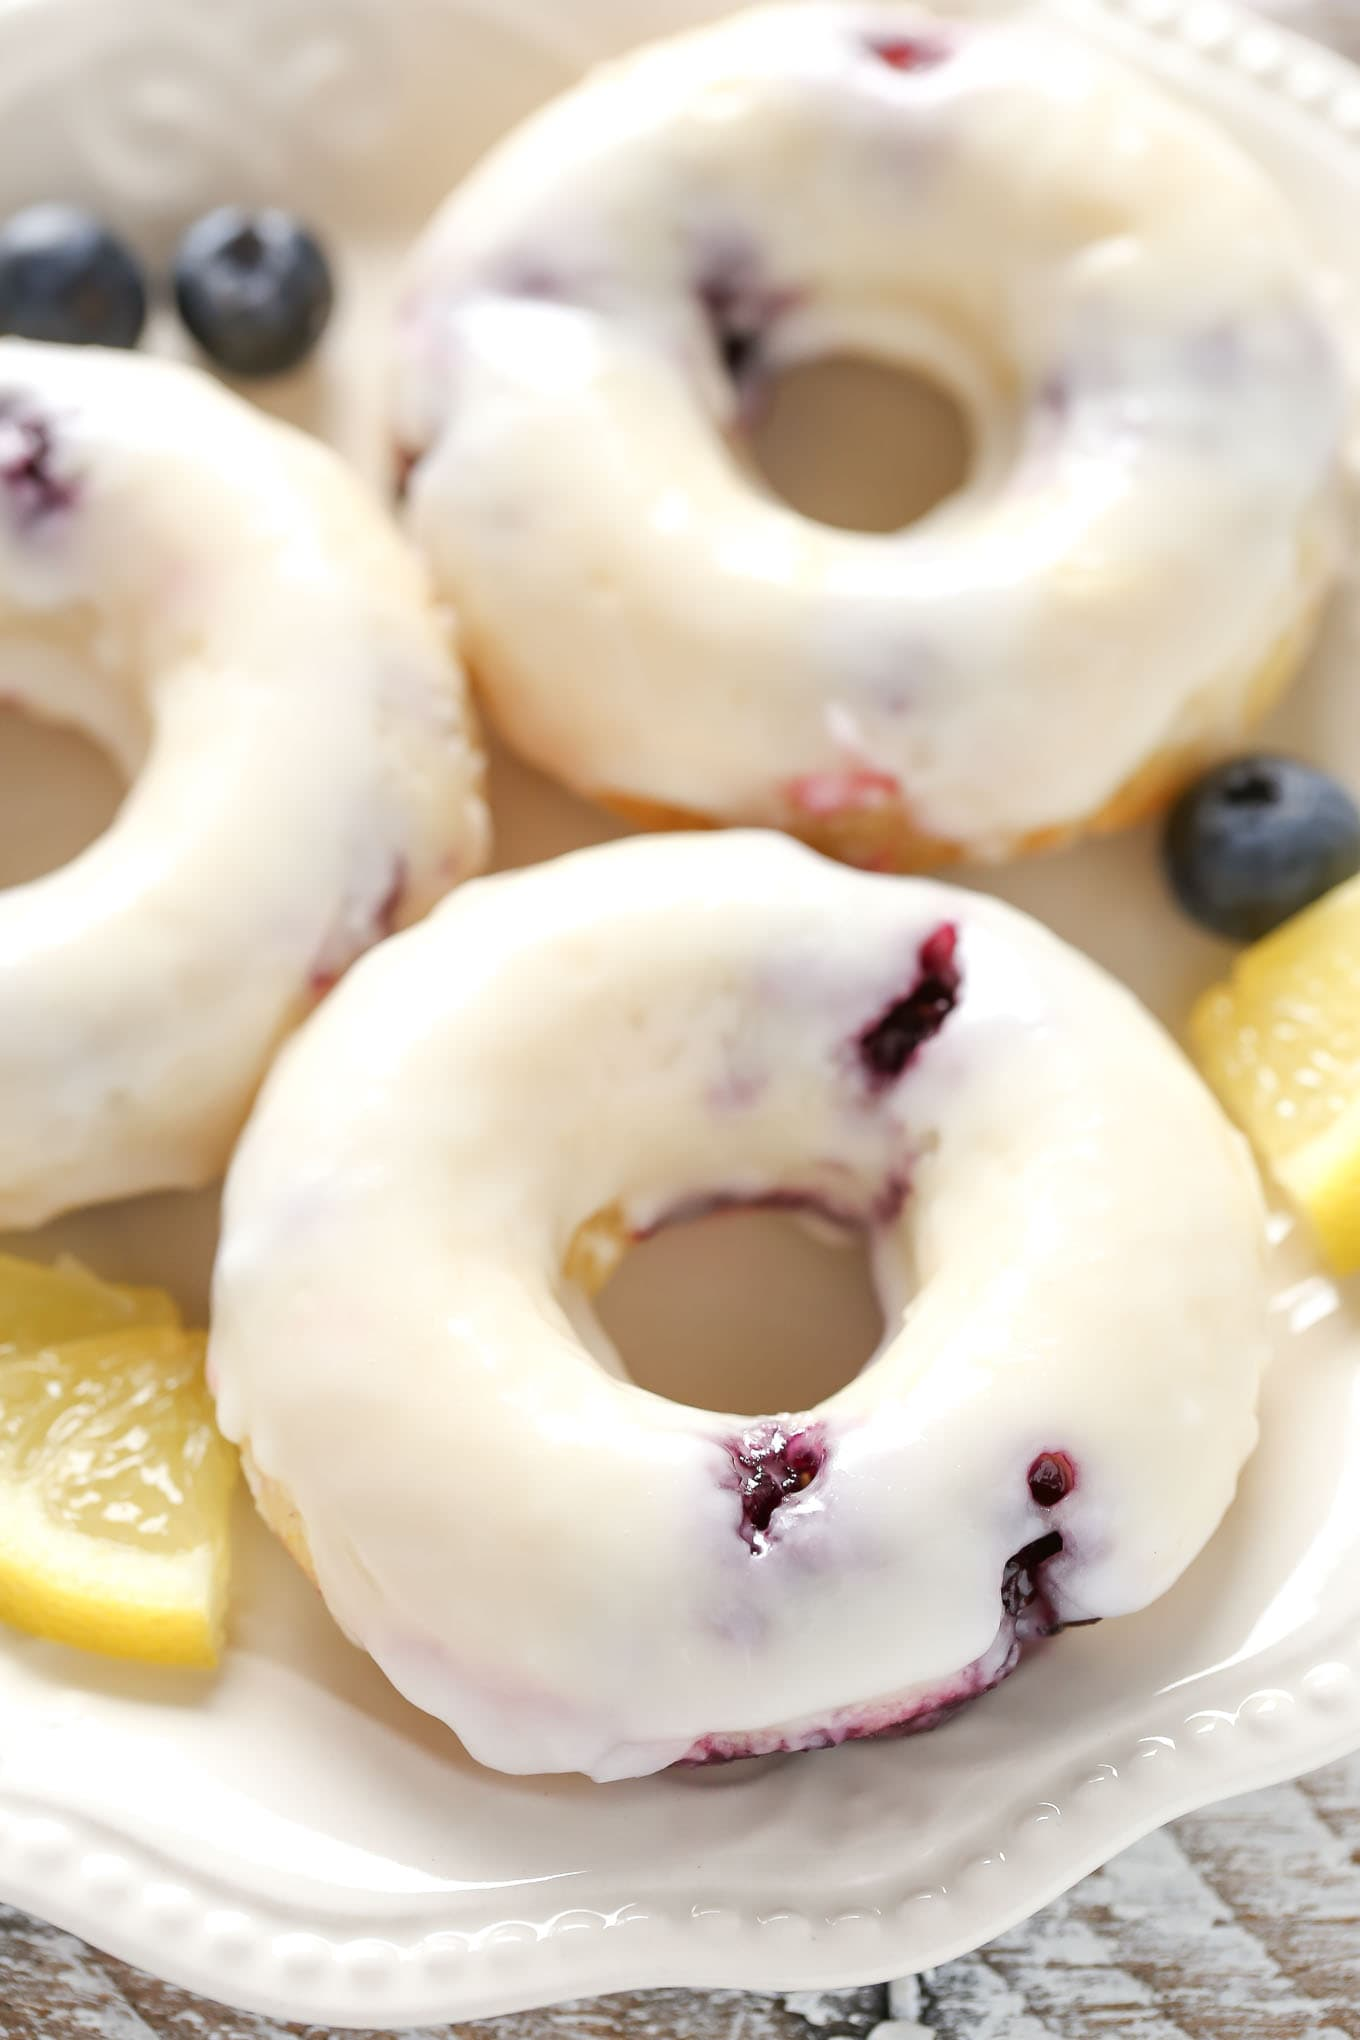 Lemon blueberry donuts topped with a simple two ingredient lemon glaze. These Baked Lemon Blueberry Donuts are incredibly easy to make and perfect for breakfast!